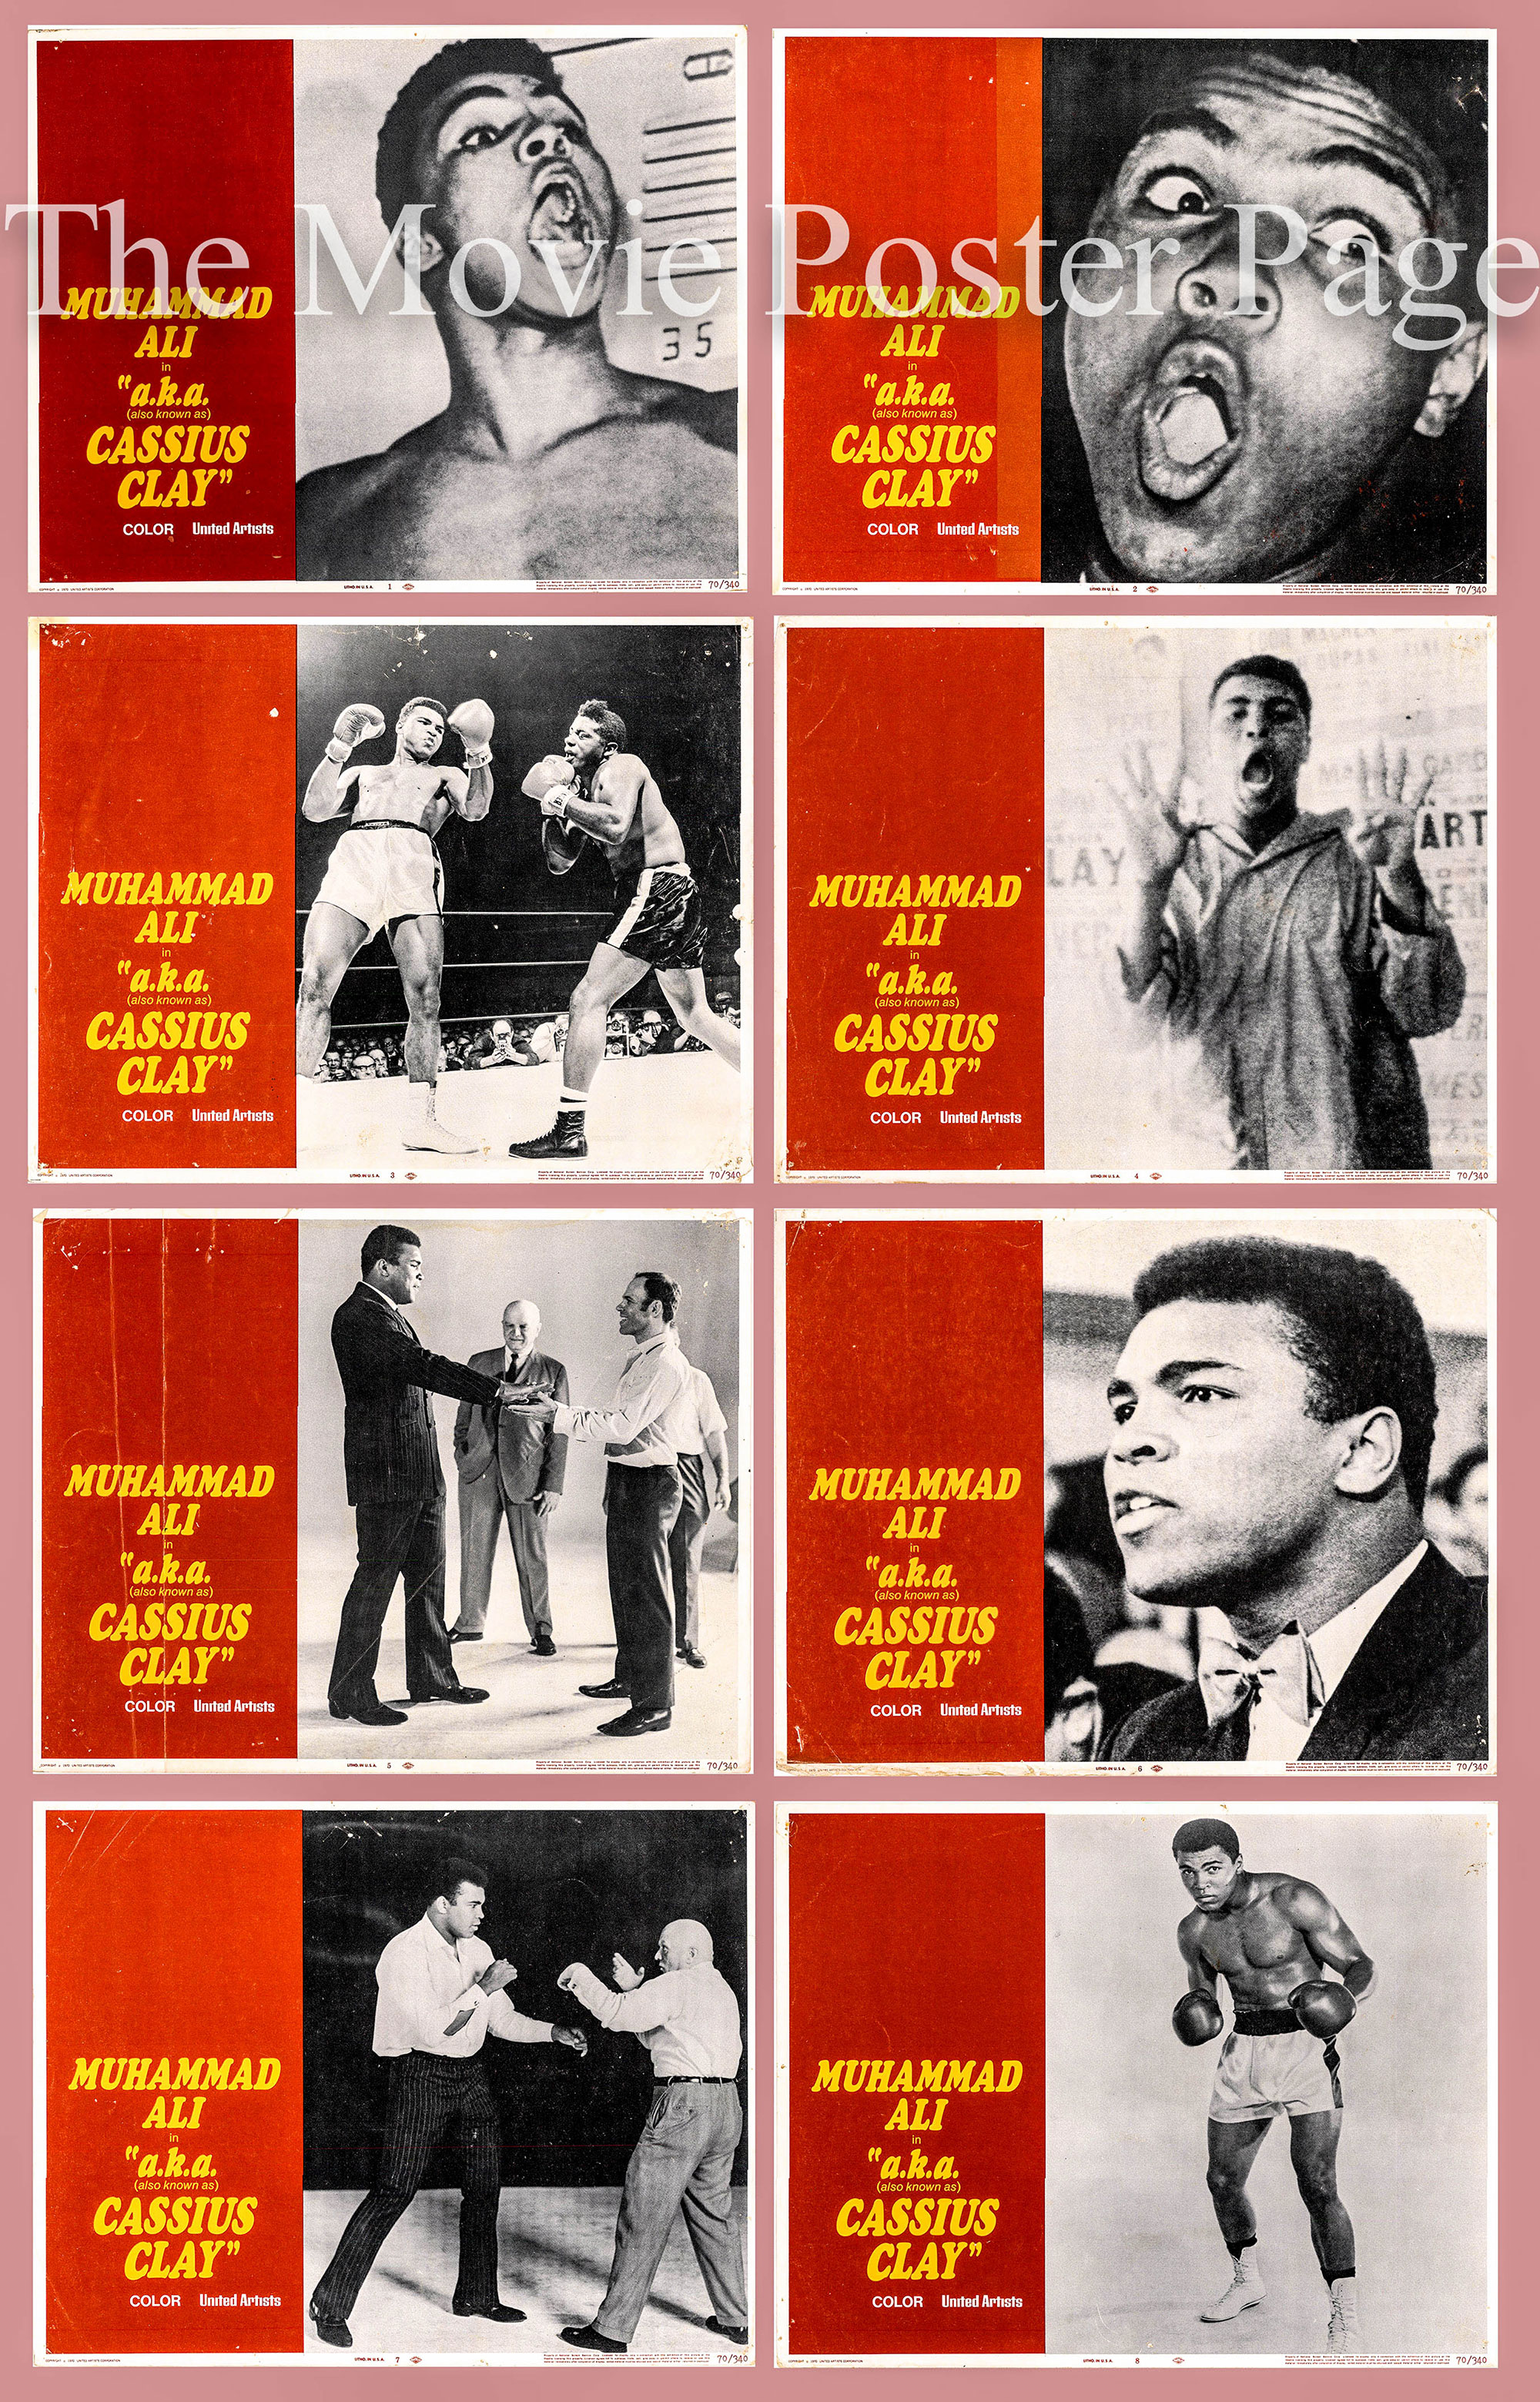 Pictured is a US lobby card set for the 1970 Jim Jacobs film Muhammad Ali: A.K.A. Cassius Clay starring Muhammad Ali.